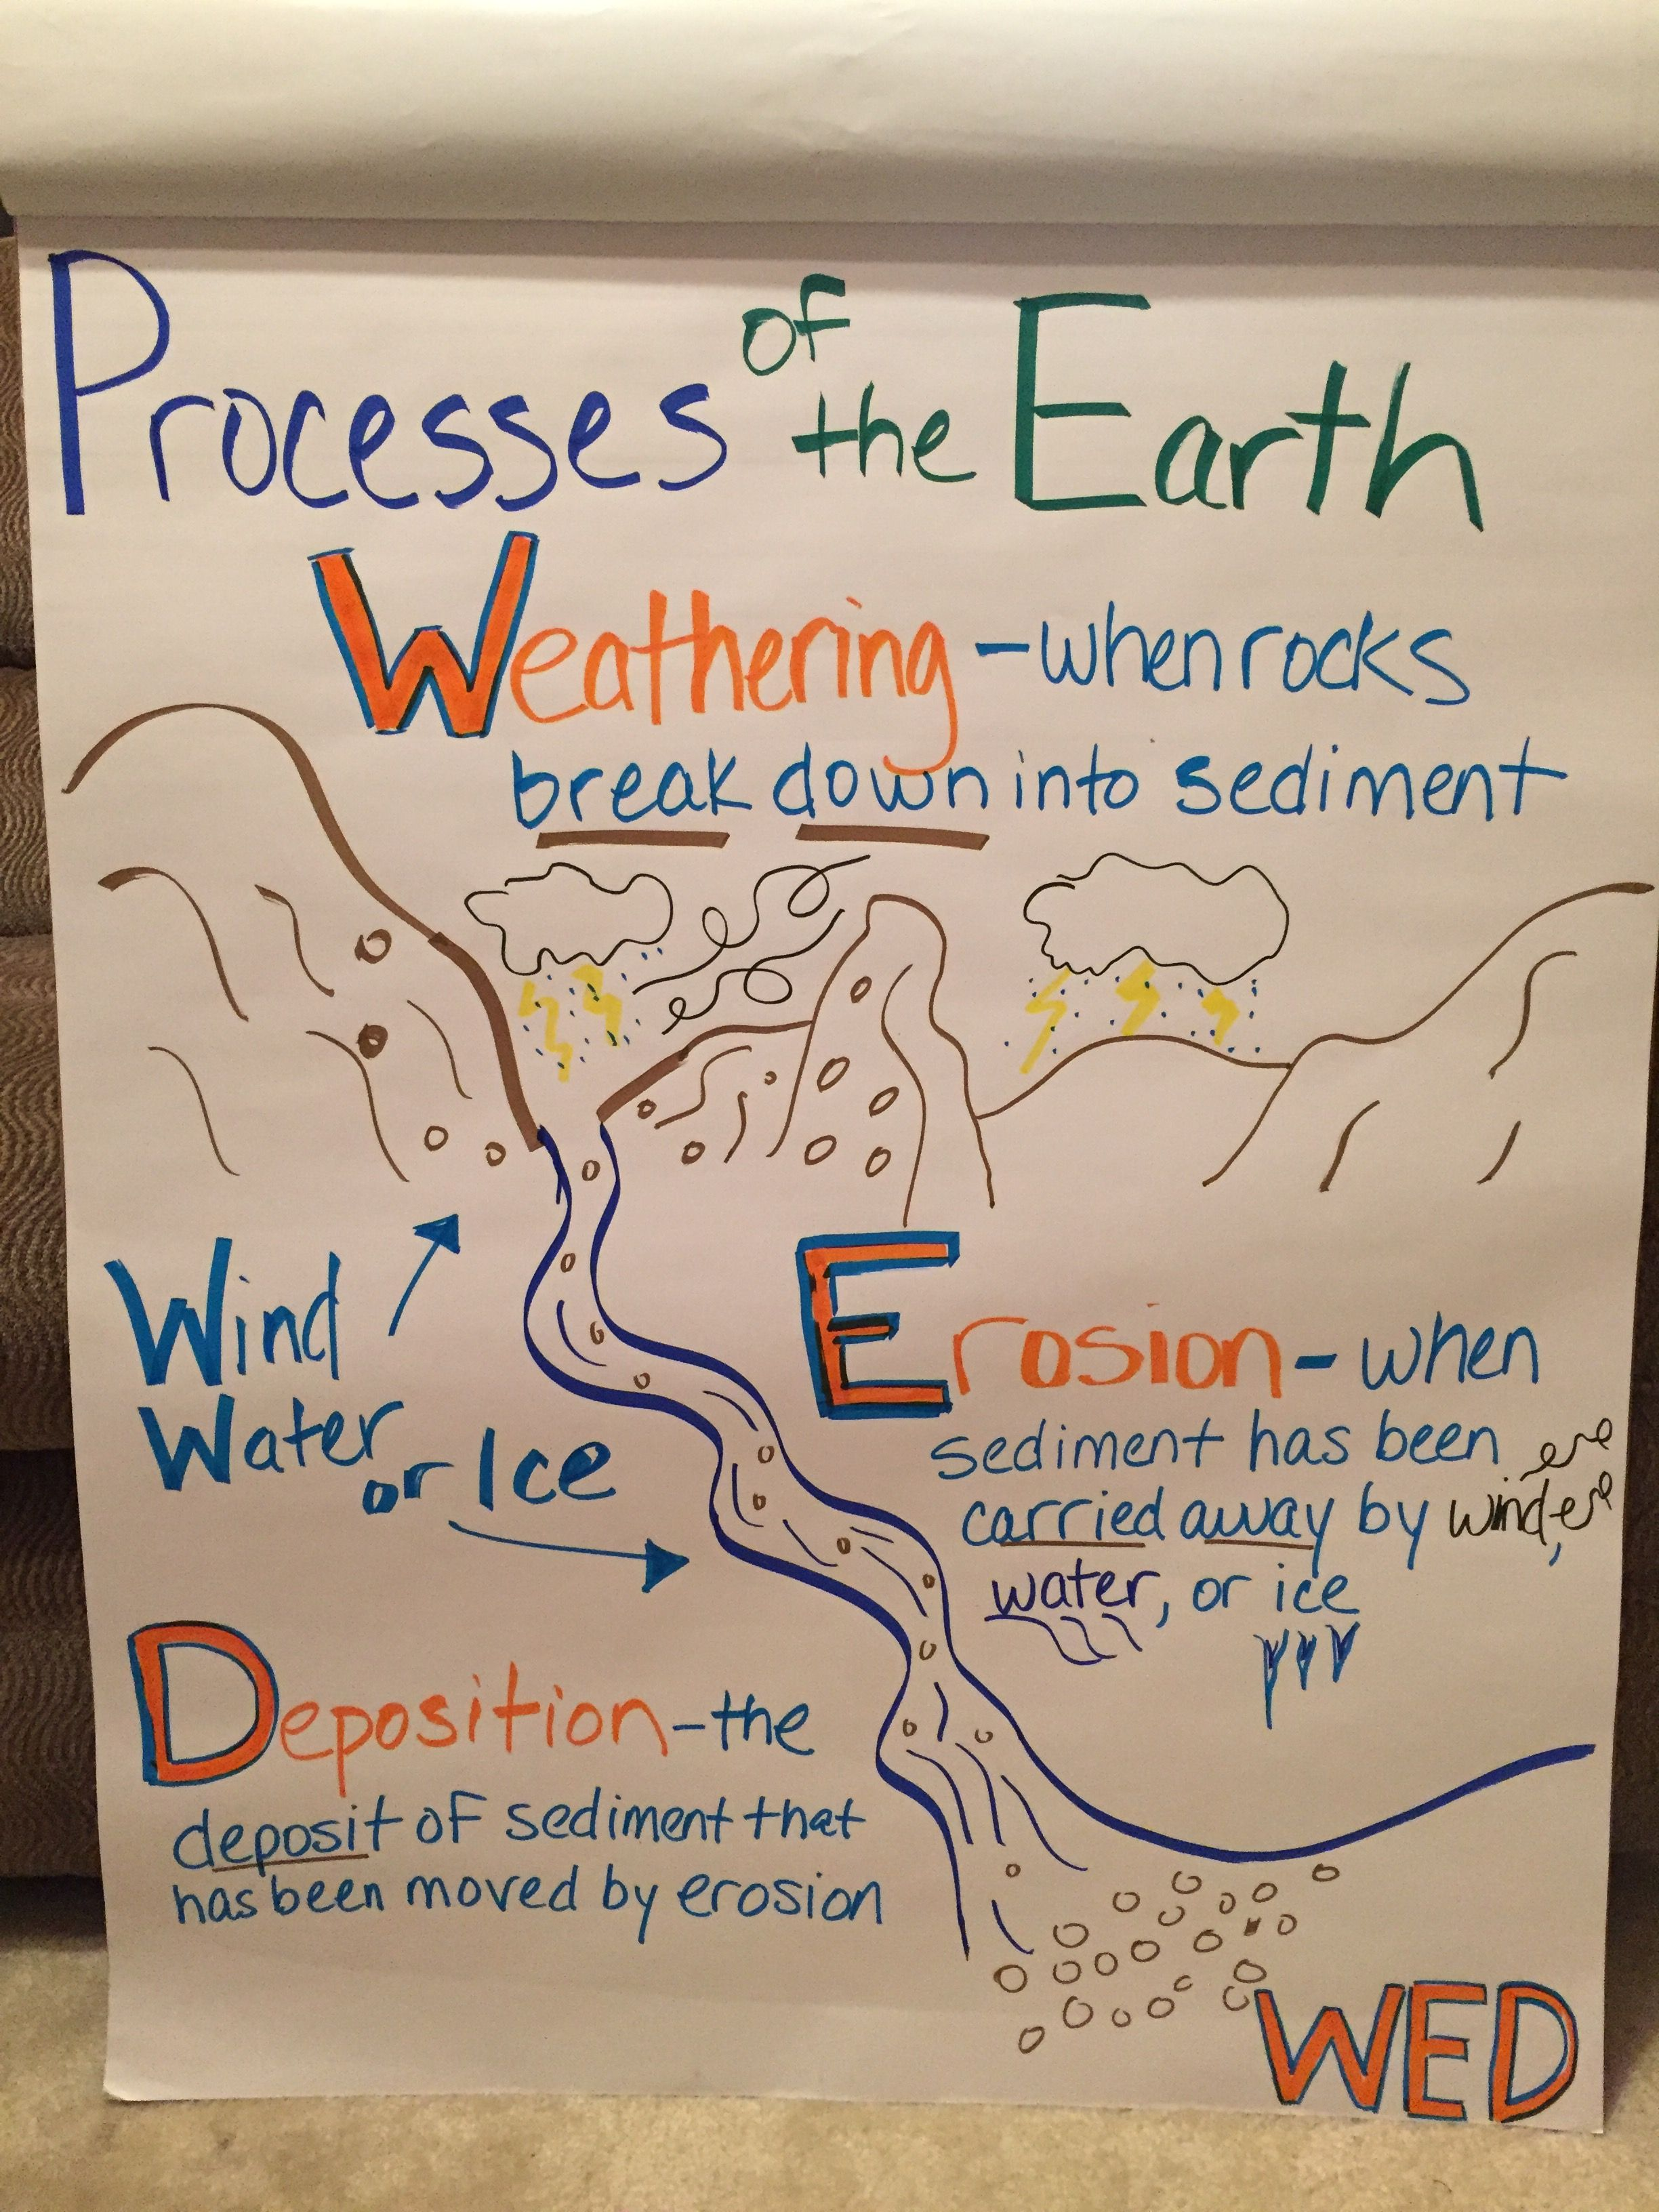 Weathering Erosion And Deposition Earth Surface Processes Weathering And Erosion Earth Surface Erosion